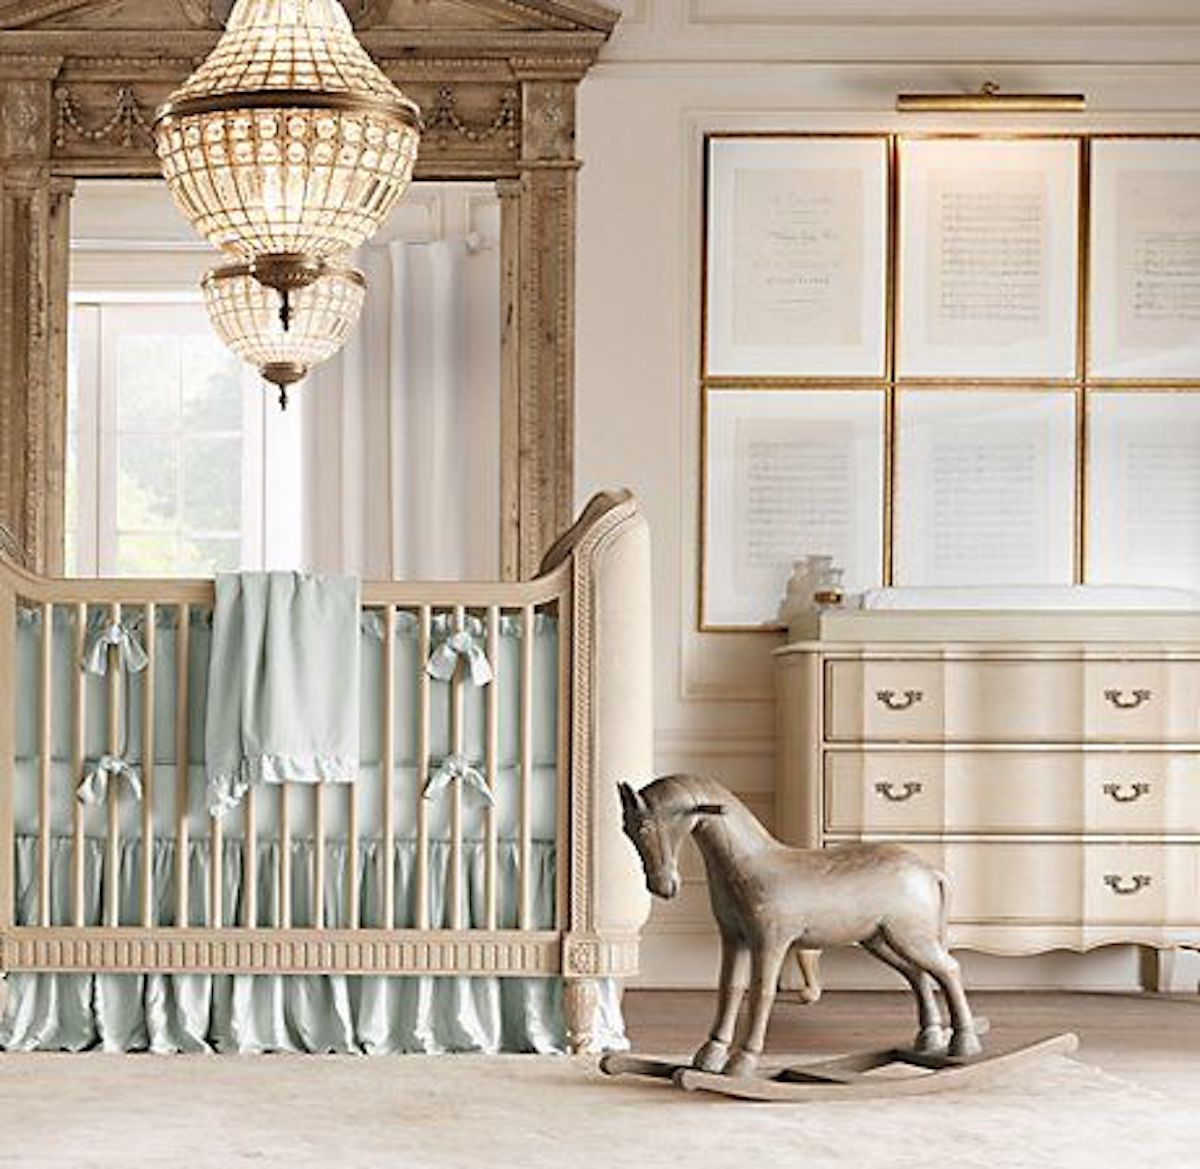 Gallery wall, crib, and rocking horse in nursery room